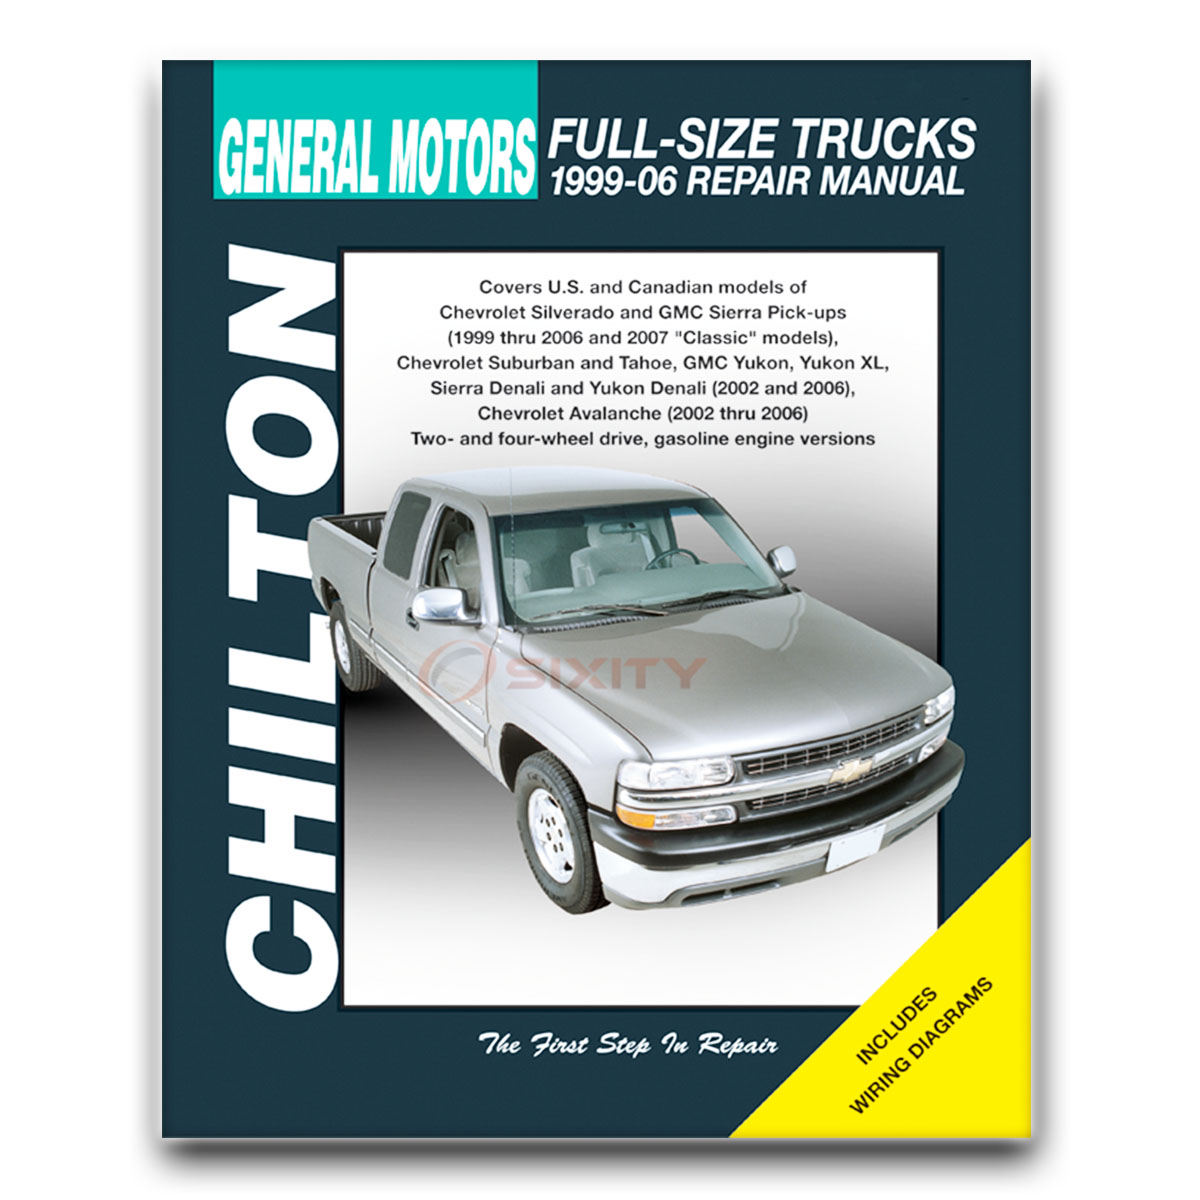 gmc yukon chilton repair manual sle slt denali shop service garage rh ebay com 2000 Yukon 2001 Yukon